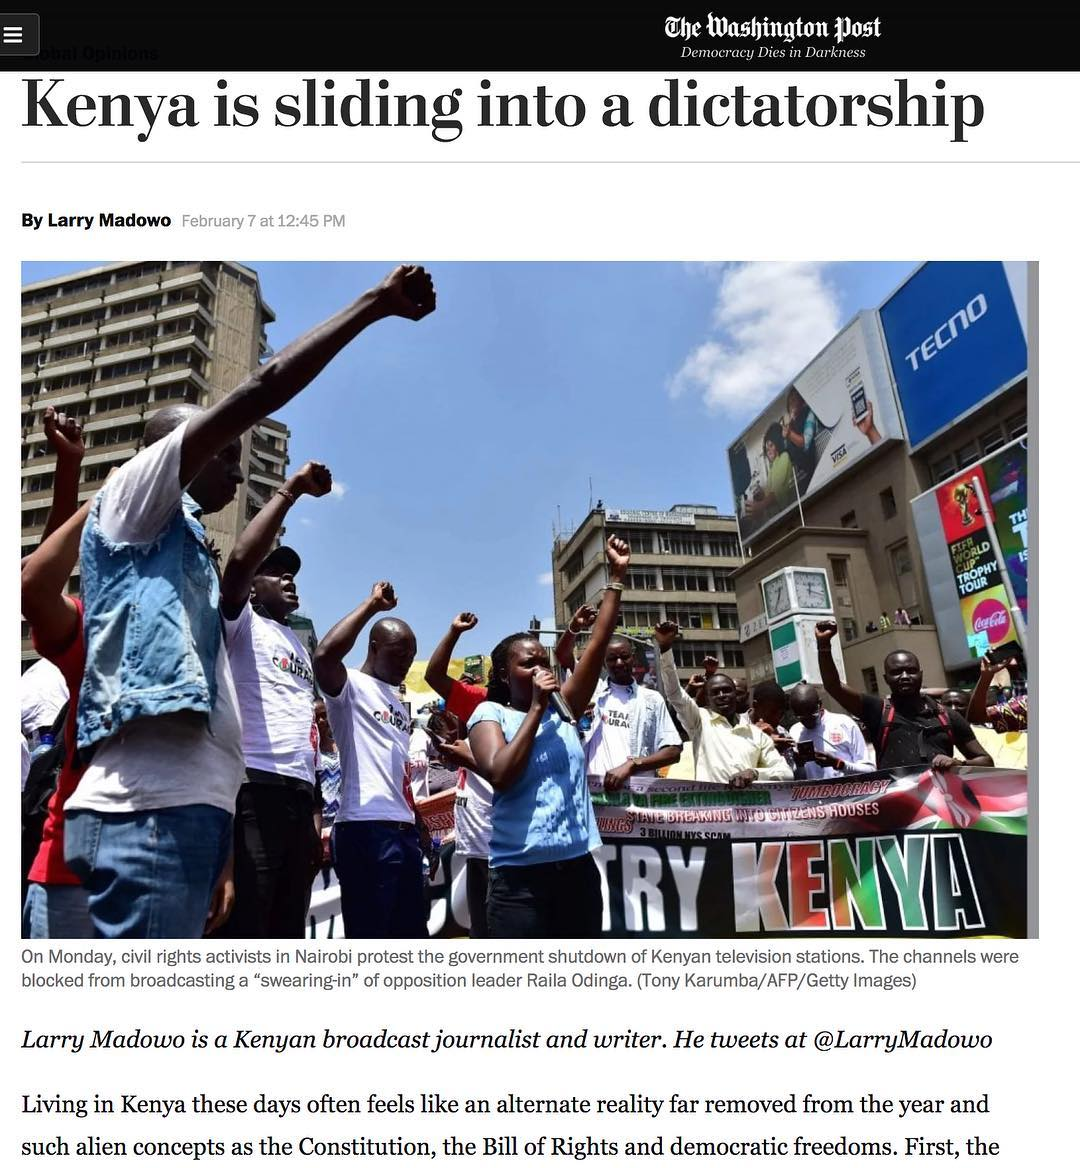 Larry Madowo article